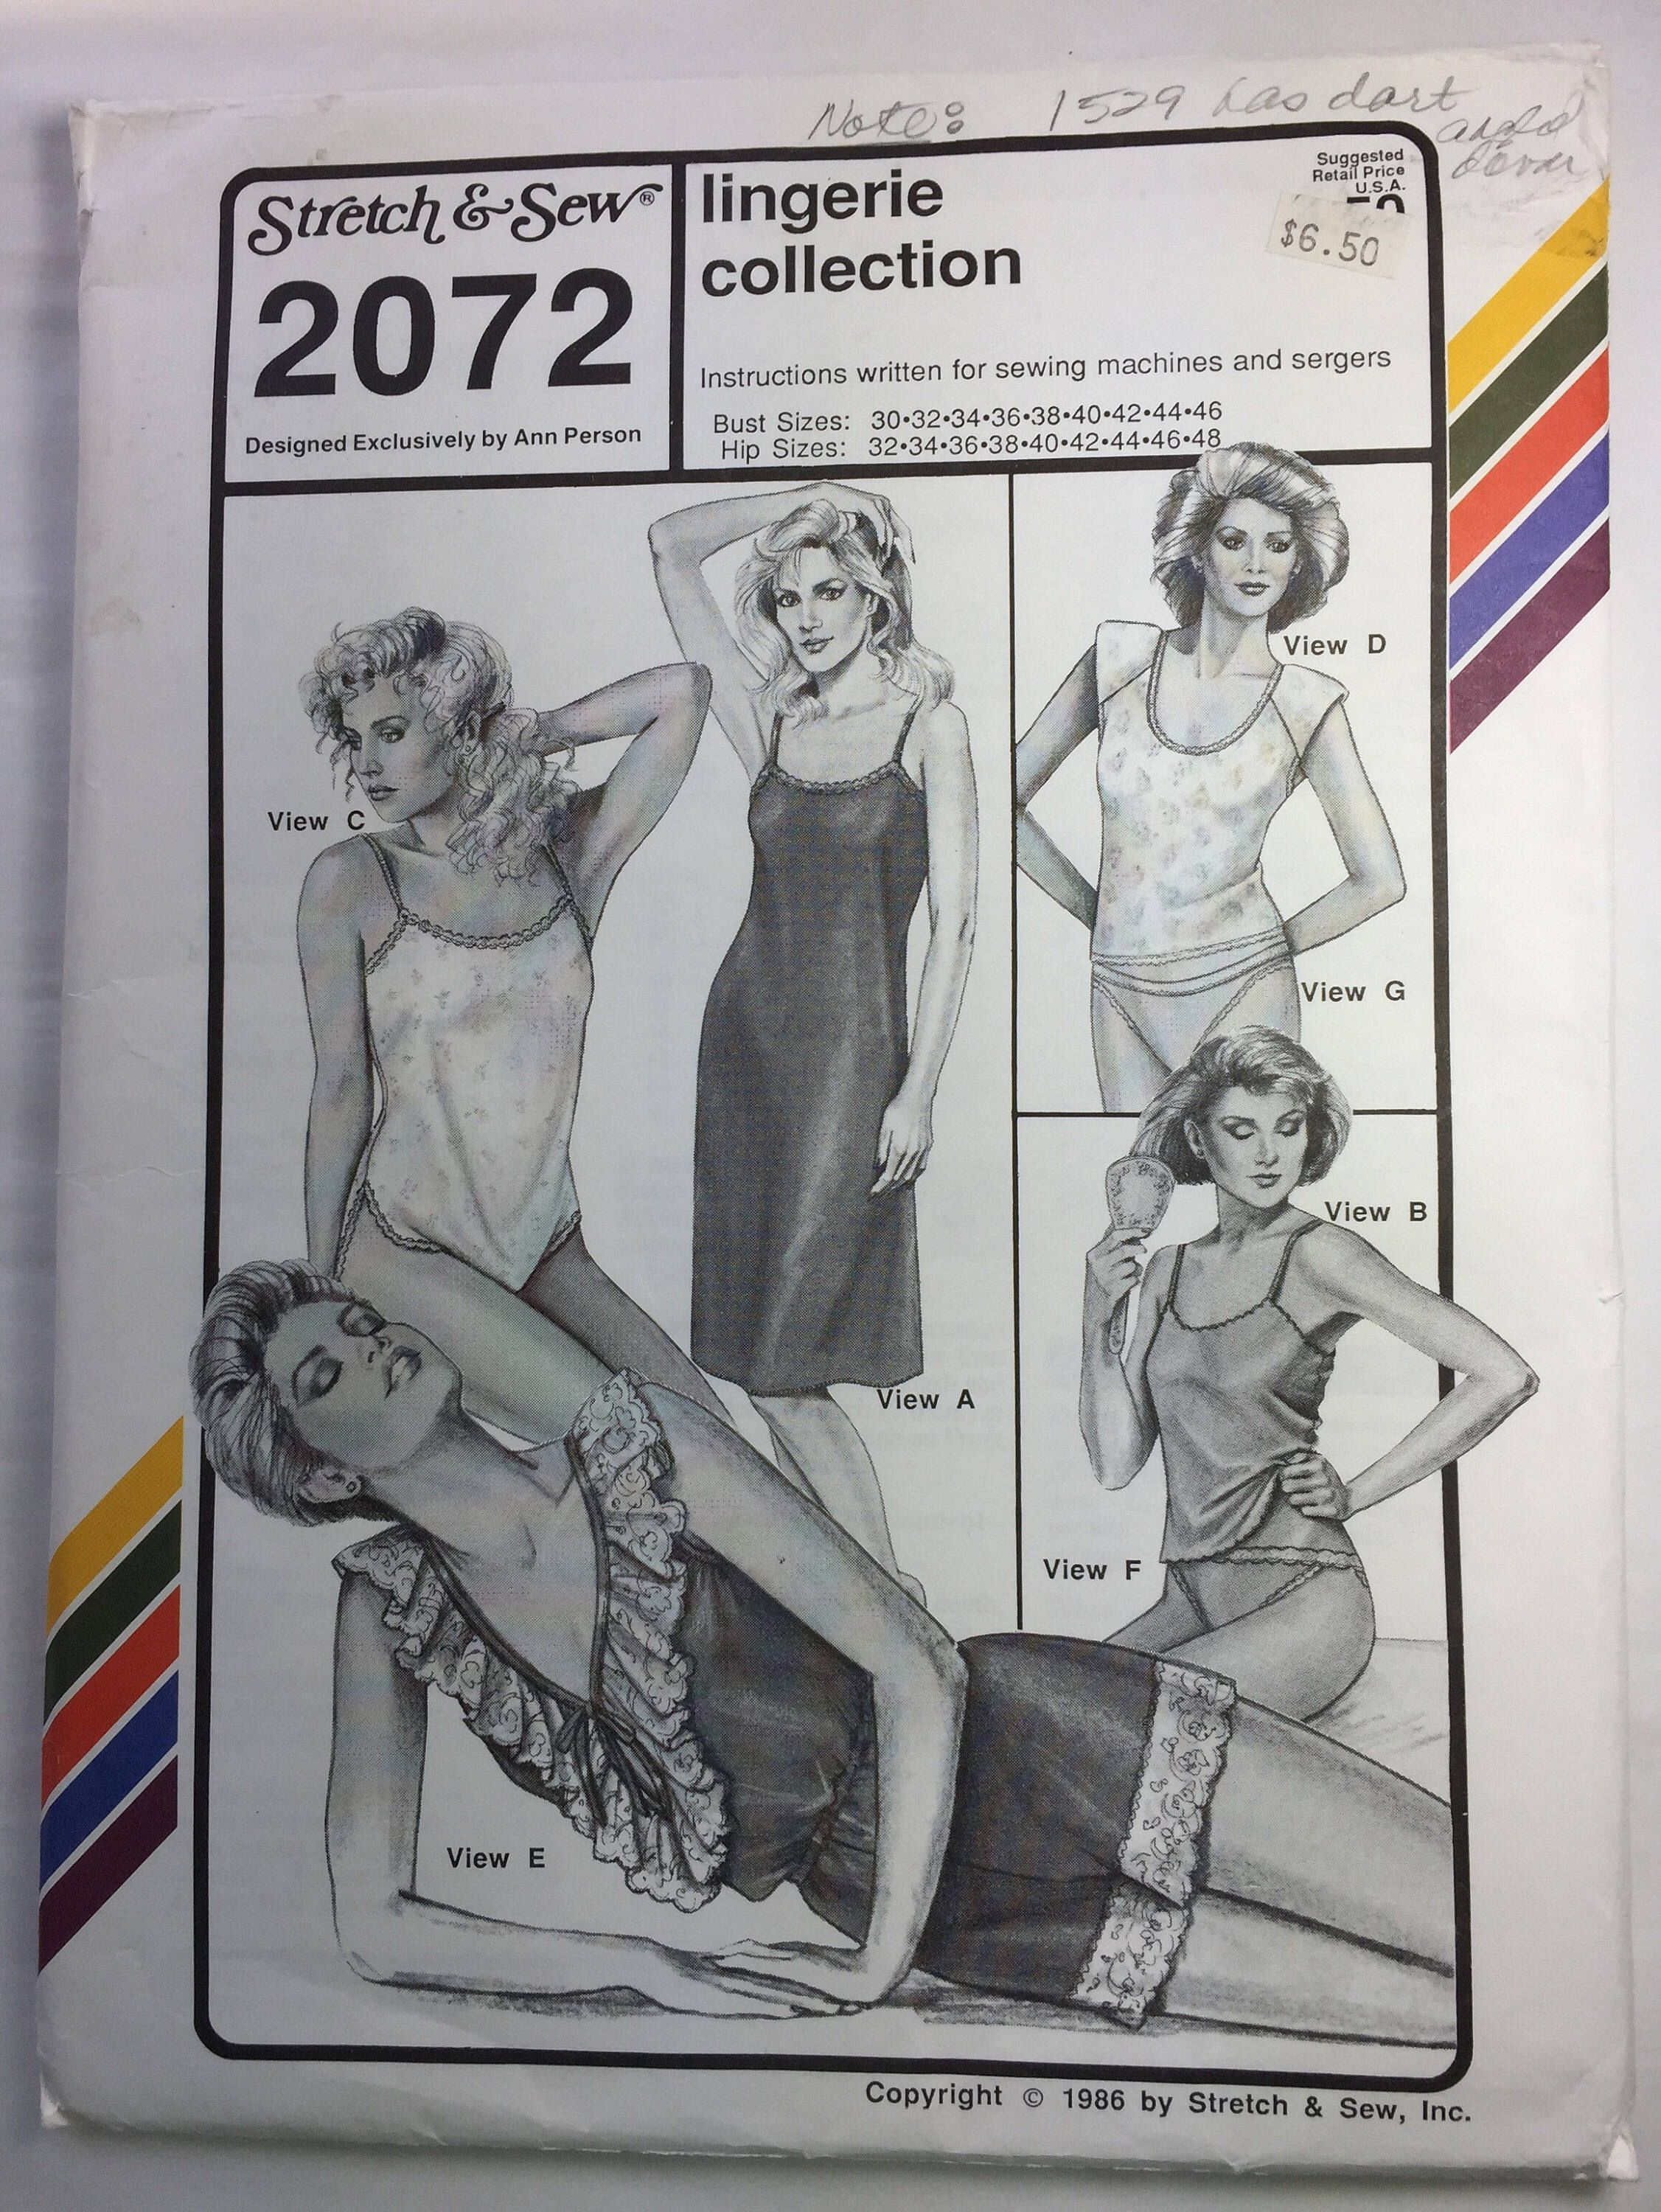 ac2f5f497 Vintage Stretch   Sew 2072 Pattern for Lingerie Collection Bias Cut Slip